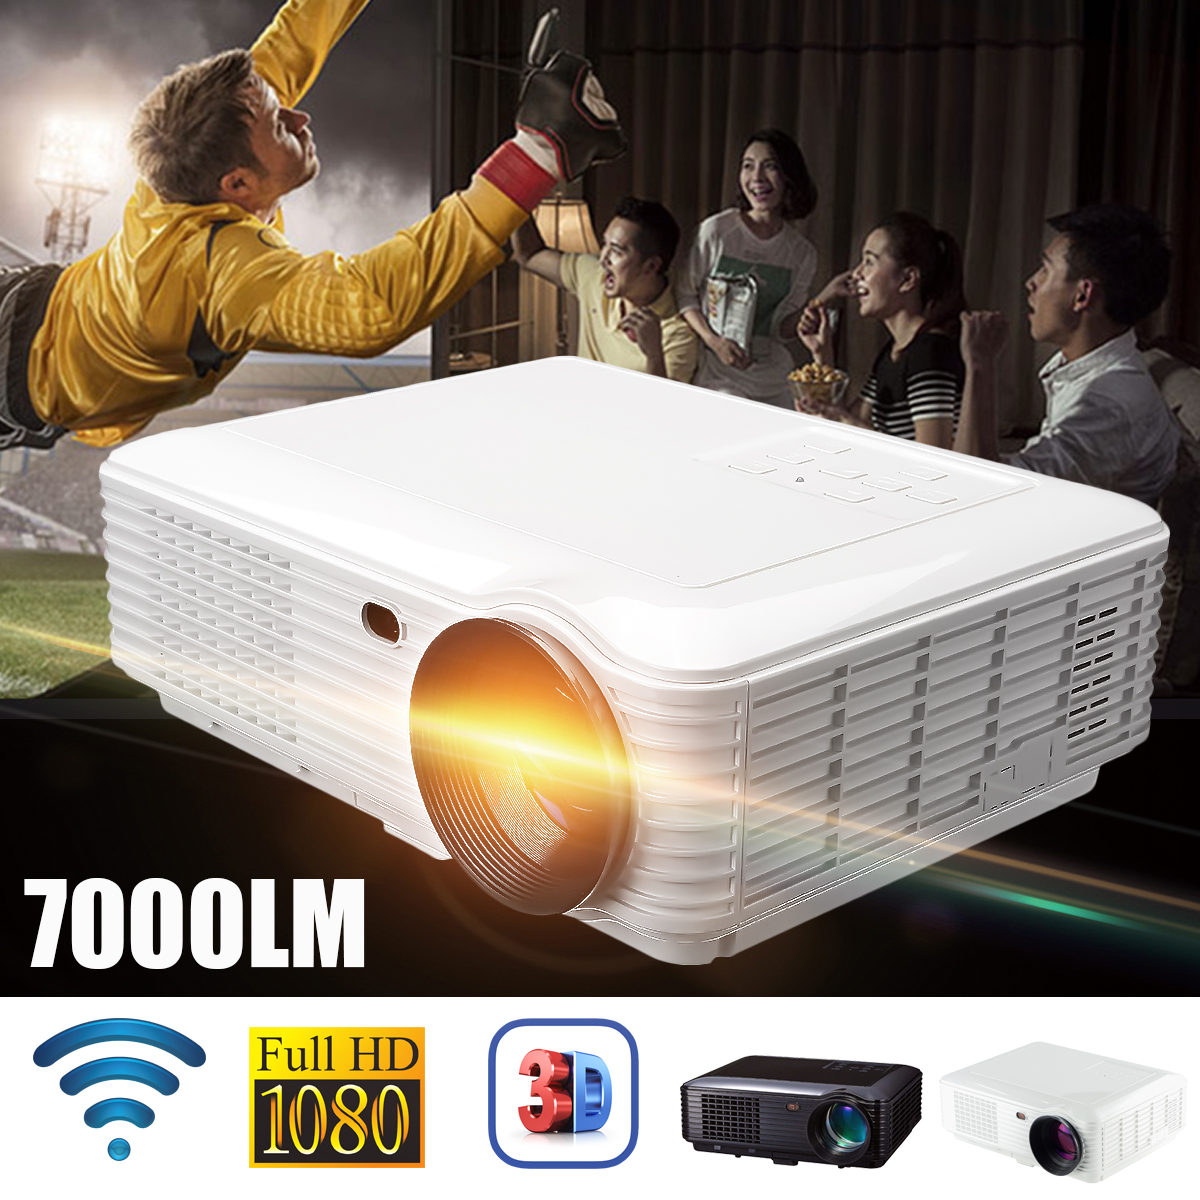 цена на SV-228 WiFi Version Projector 7000 Lumens 1080P Portable Led Projector Digital Projector with AV VGA cable